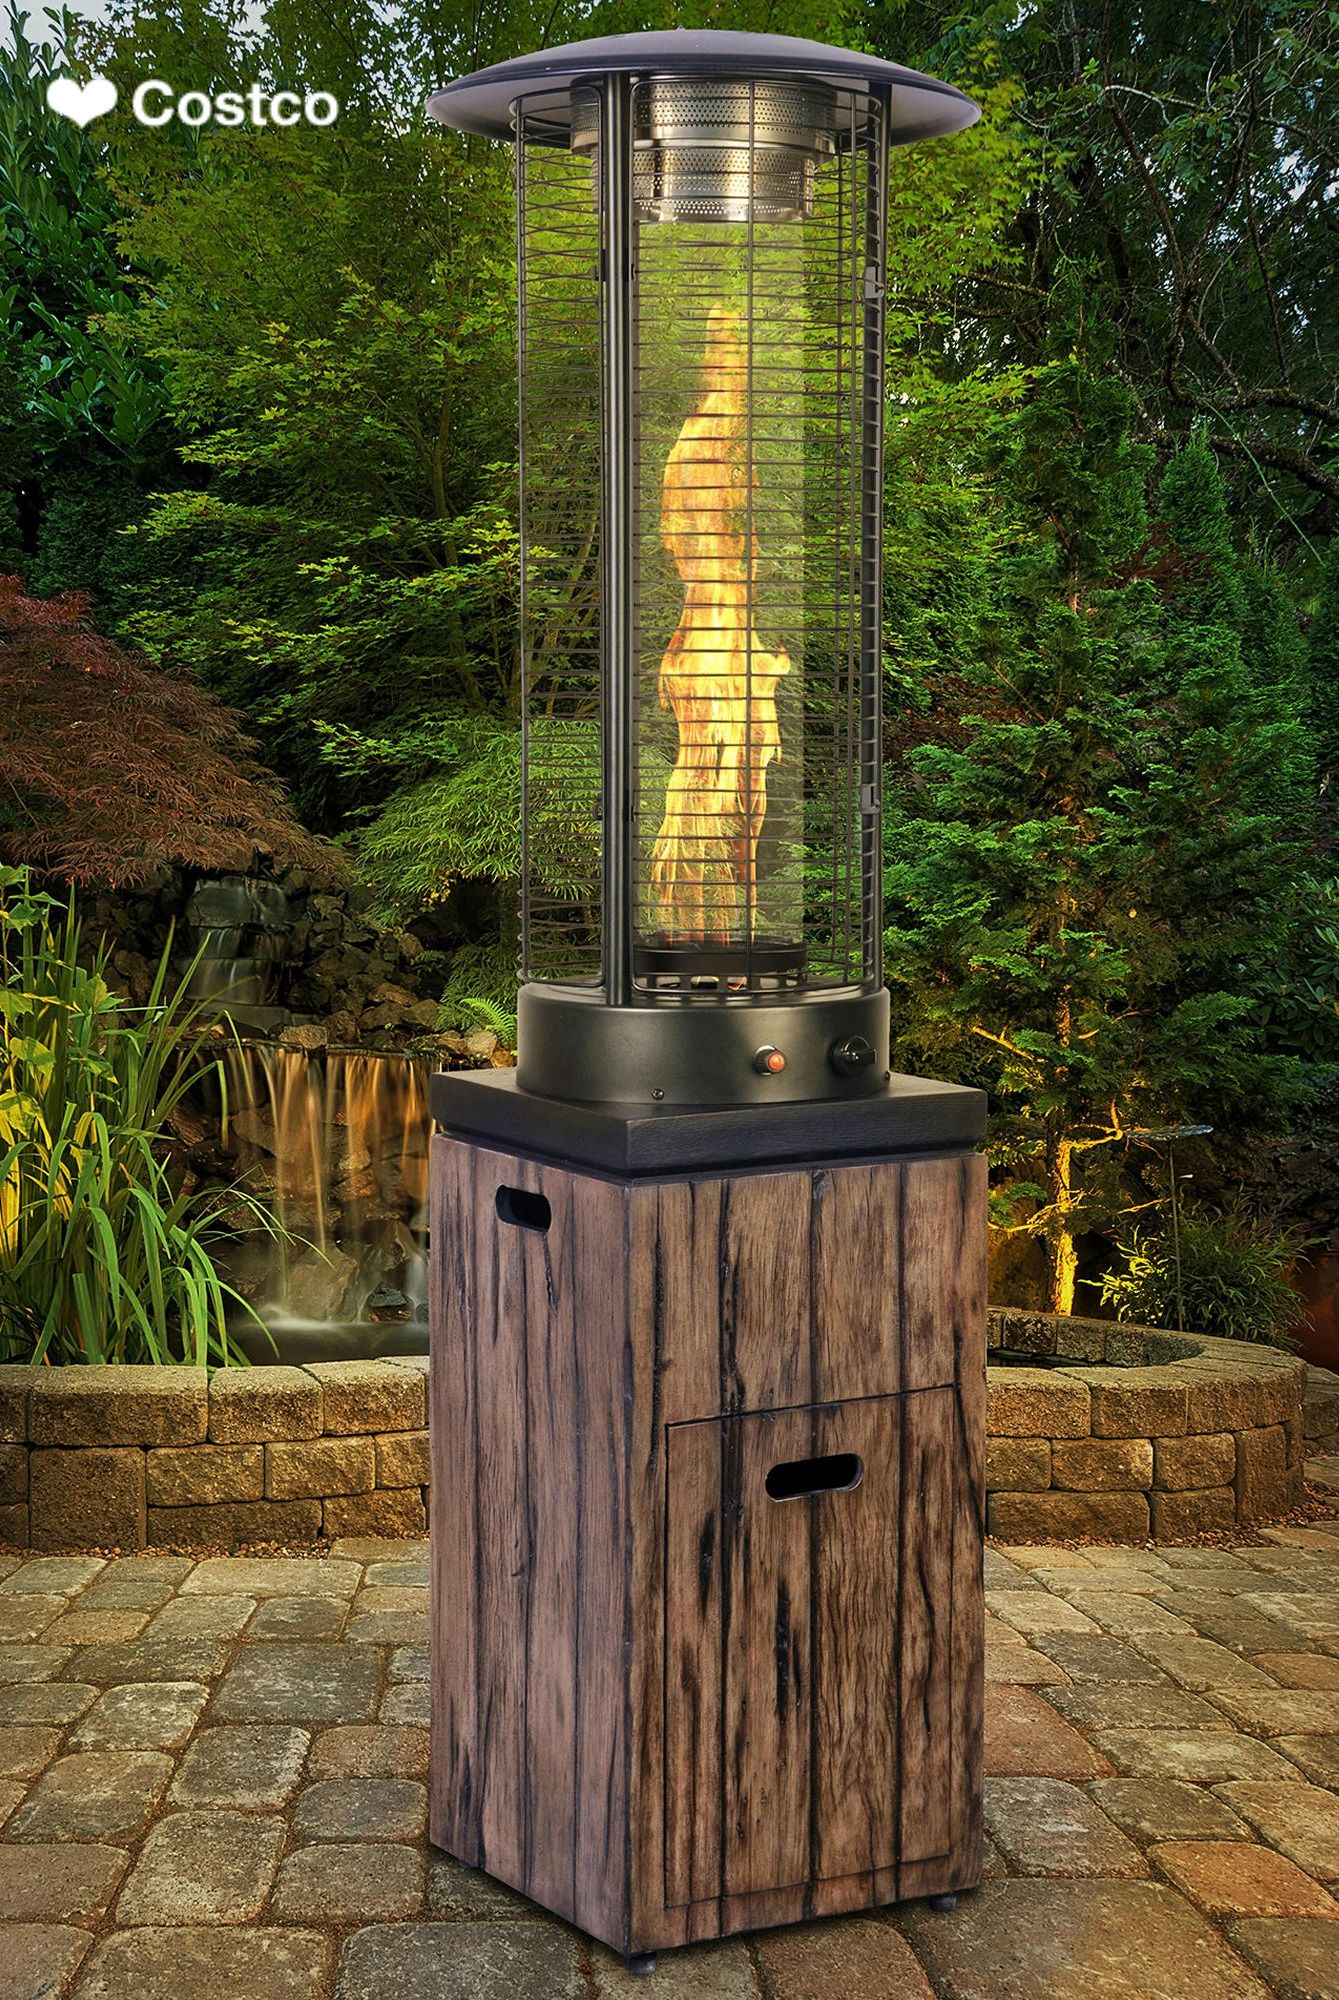 Make Sure To Keep Your Guests Warm On Summer Nights Find A Large Selection Of Outdoor And Patio Heating Prod Outdoor Heating Patio Heater Propane Patio Heater